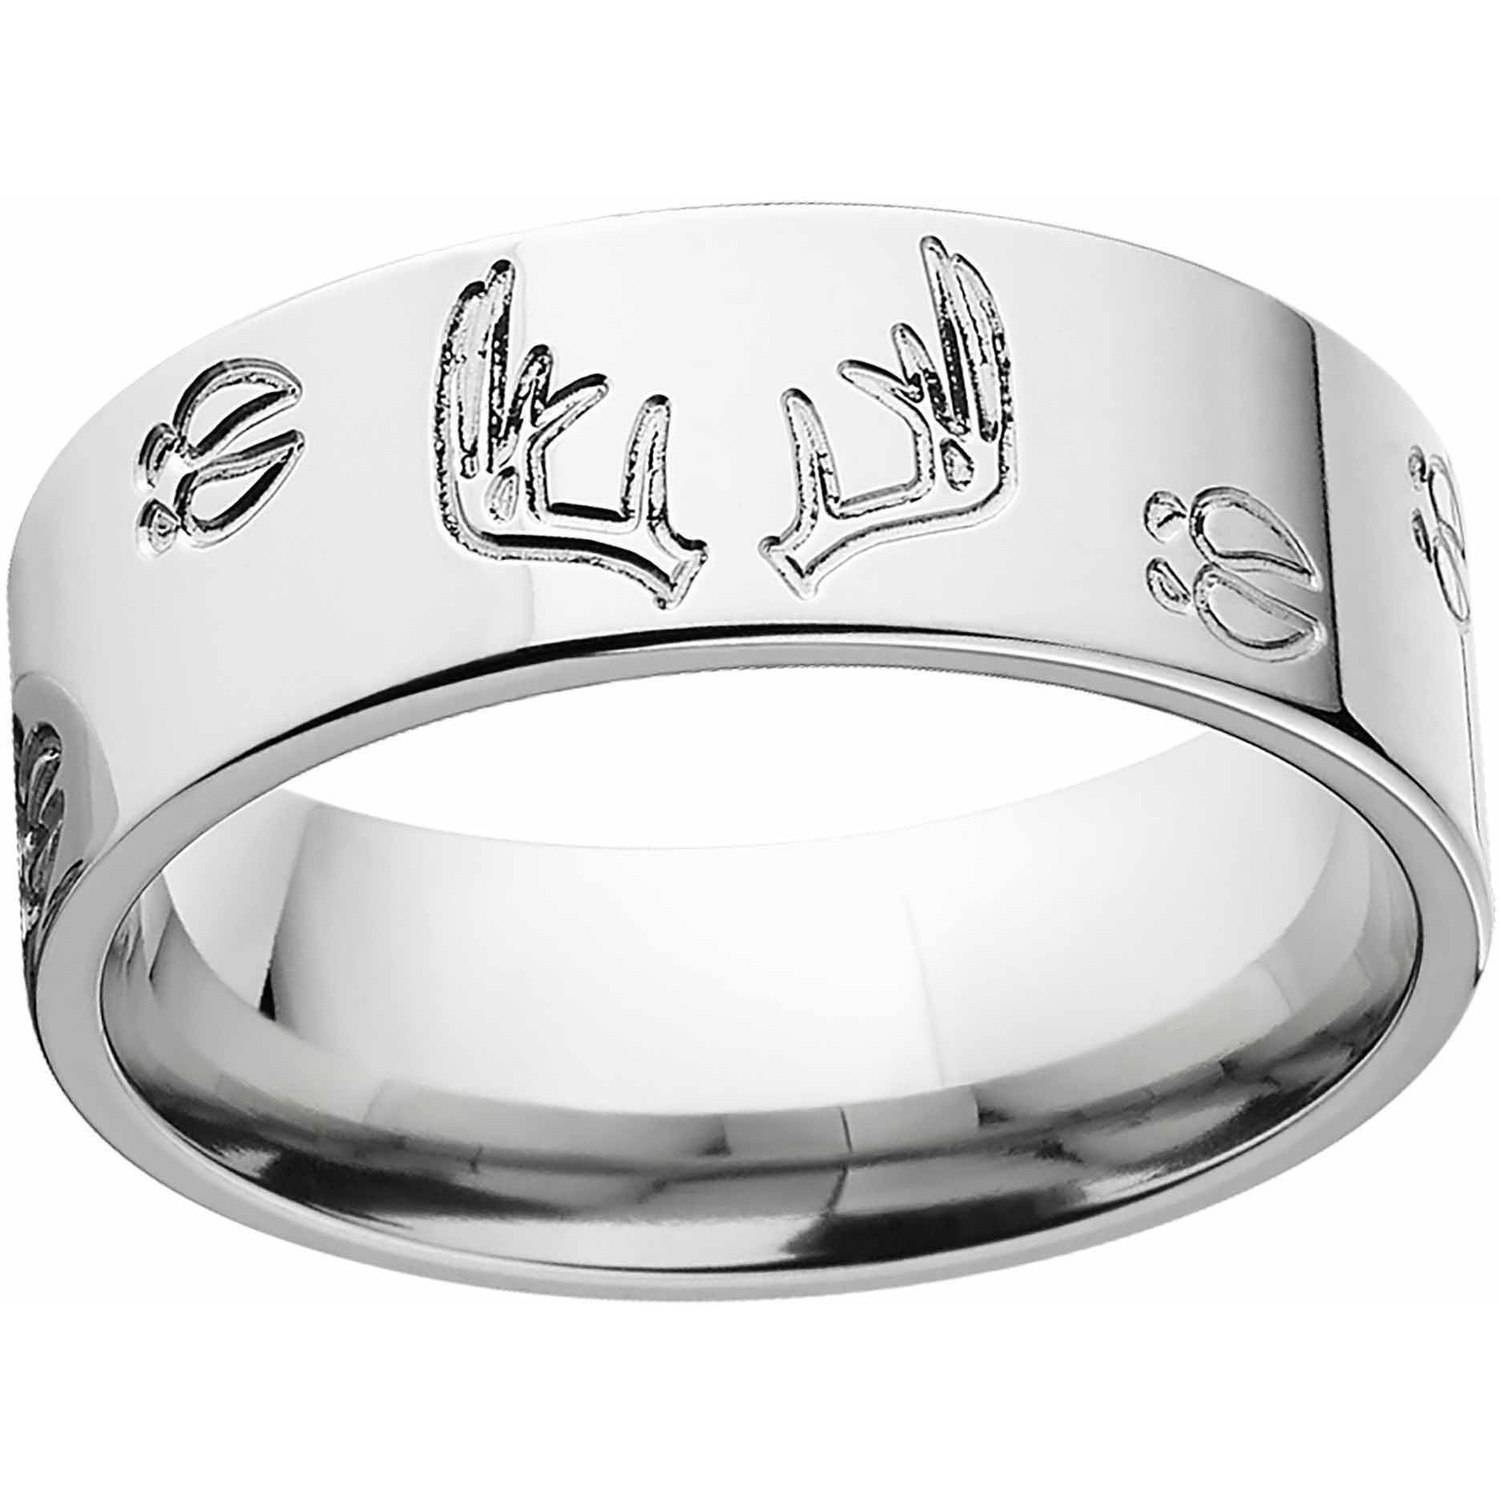 Men's Deer Track And Rack Durable 8mm Stainless Steel Wedding Band With Walmart Jewelry Men's Wedding Bands (View 11 of 15)